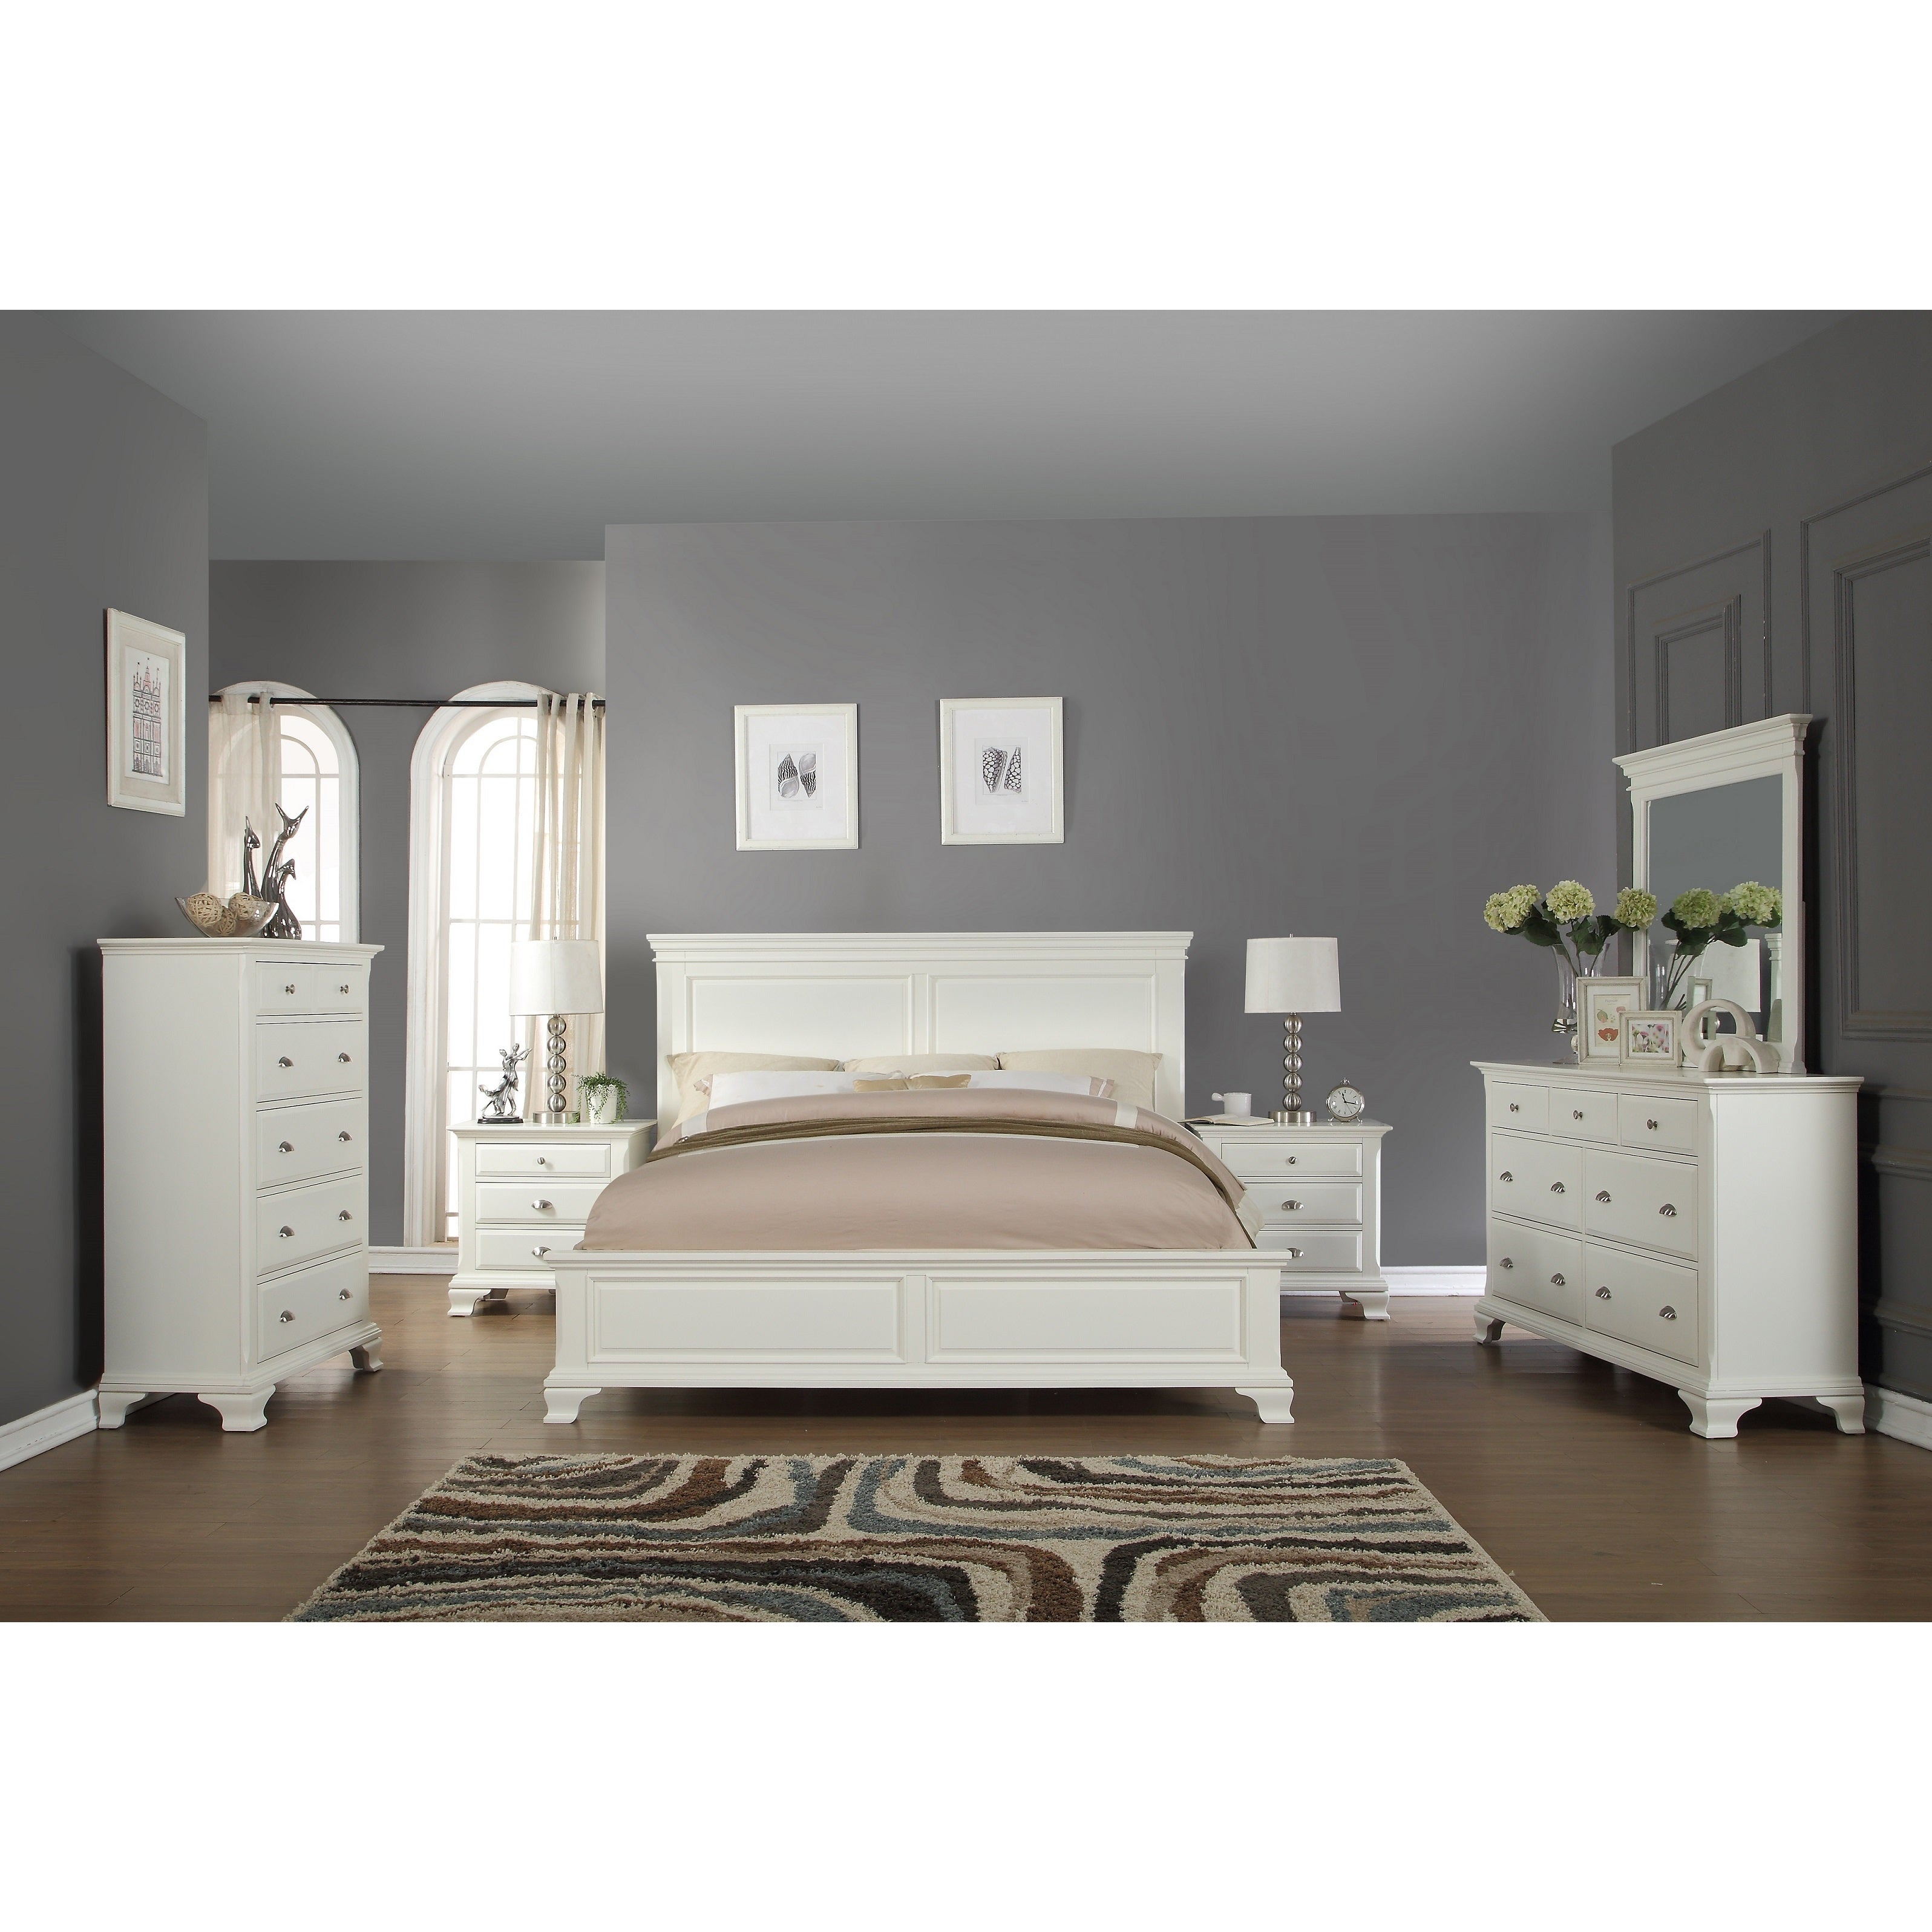 Laveno 012 White Wood Bedroom Furniture Set Includes Queen Bed Dresser Mirror 2 Night Stands And Chest